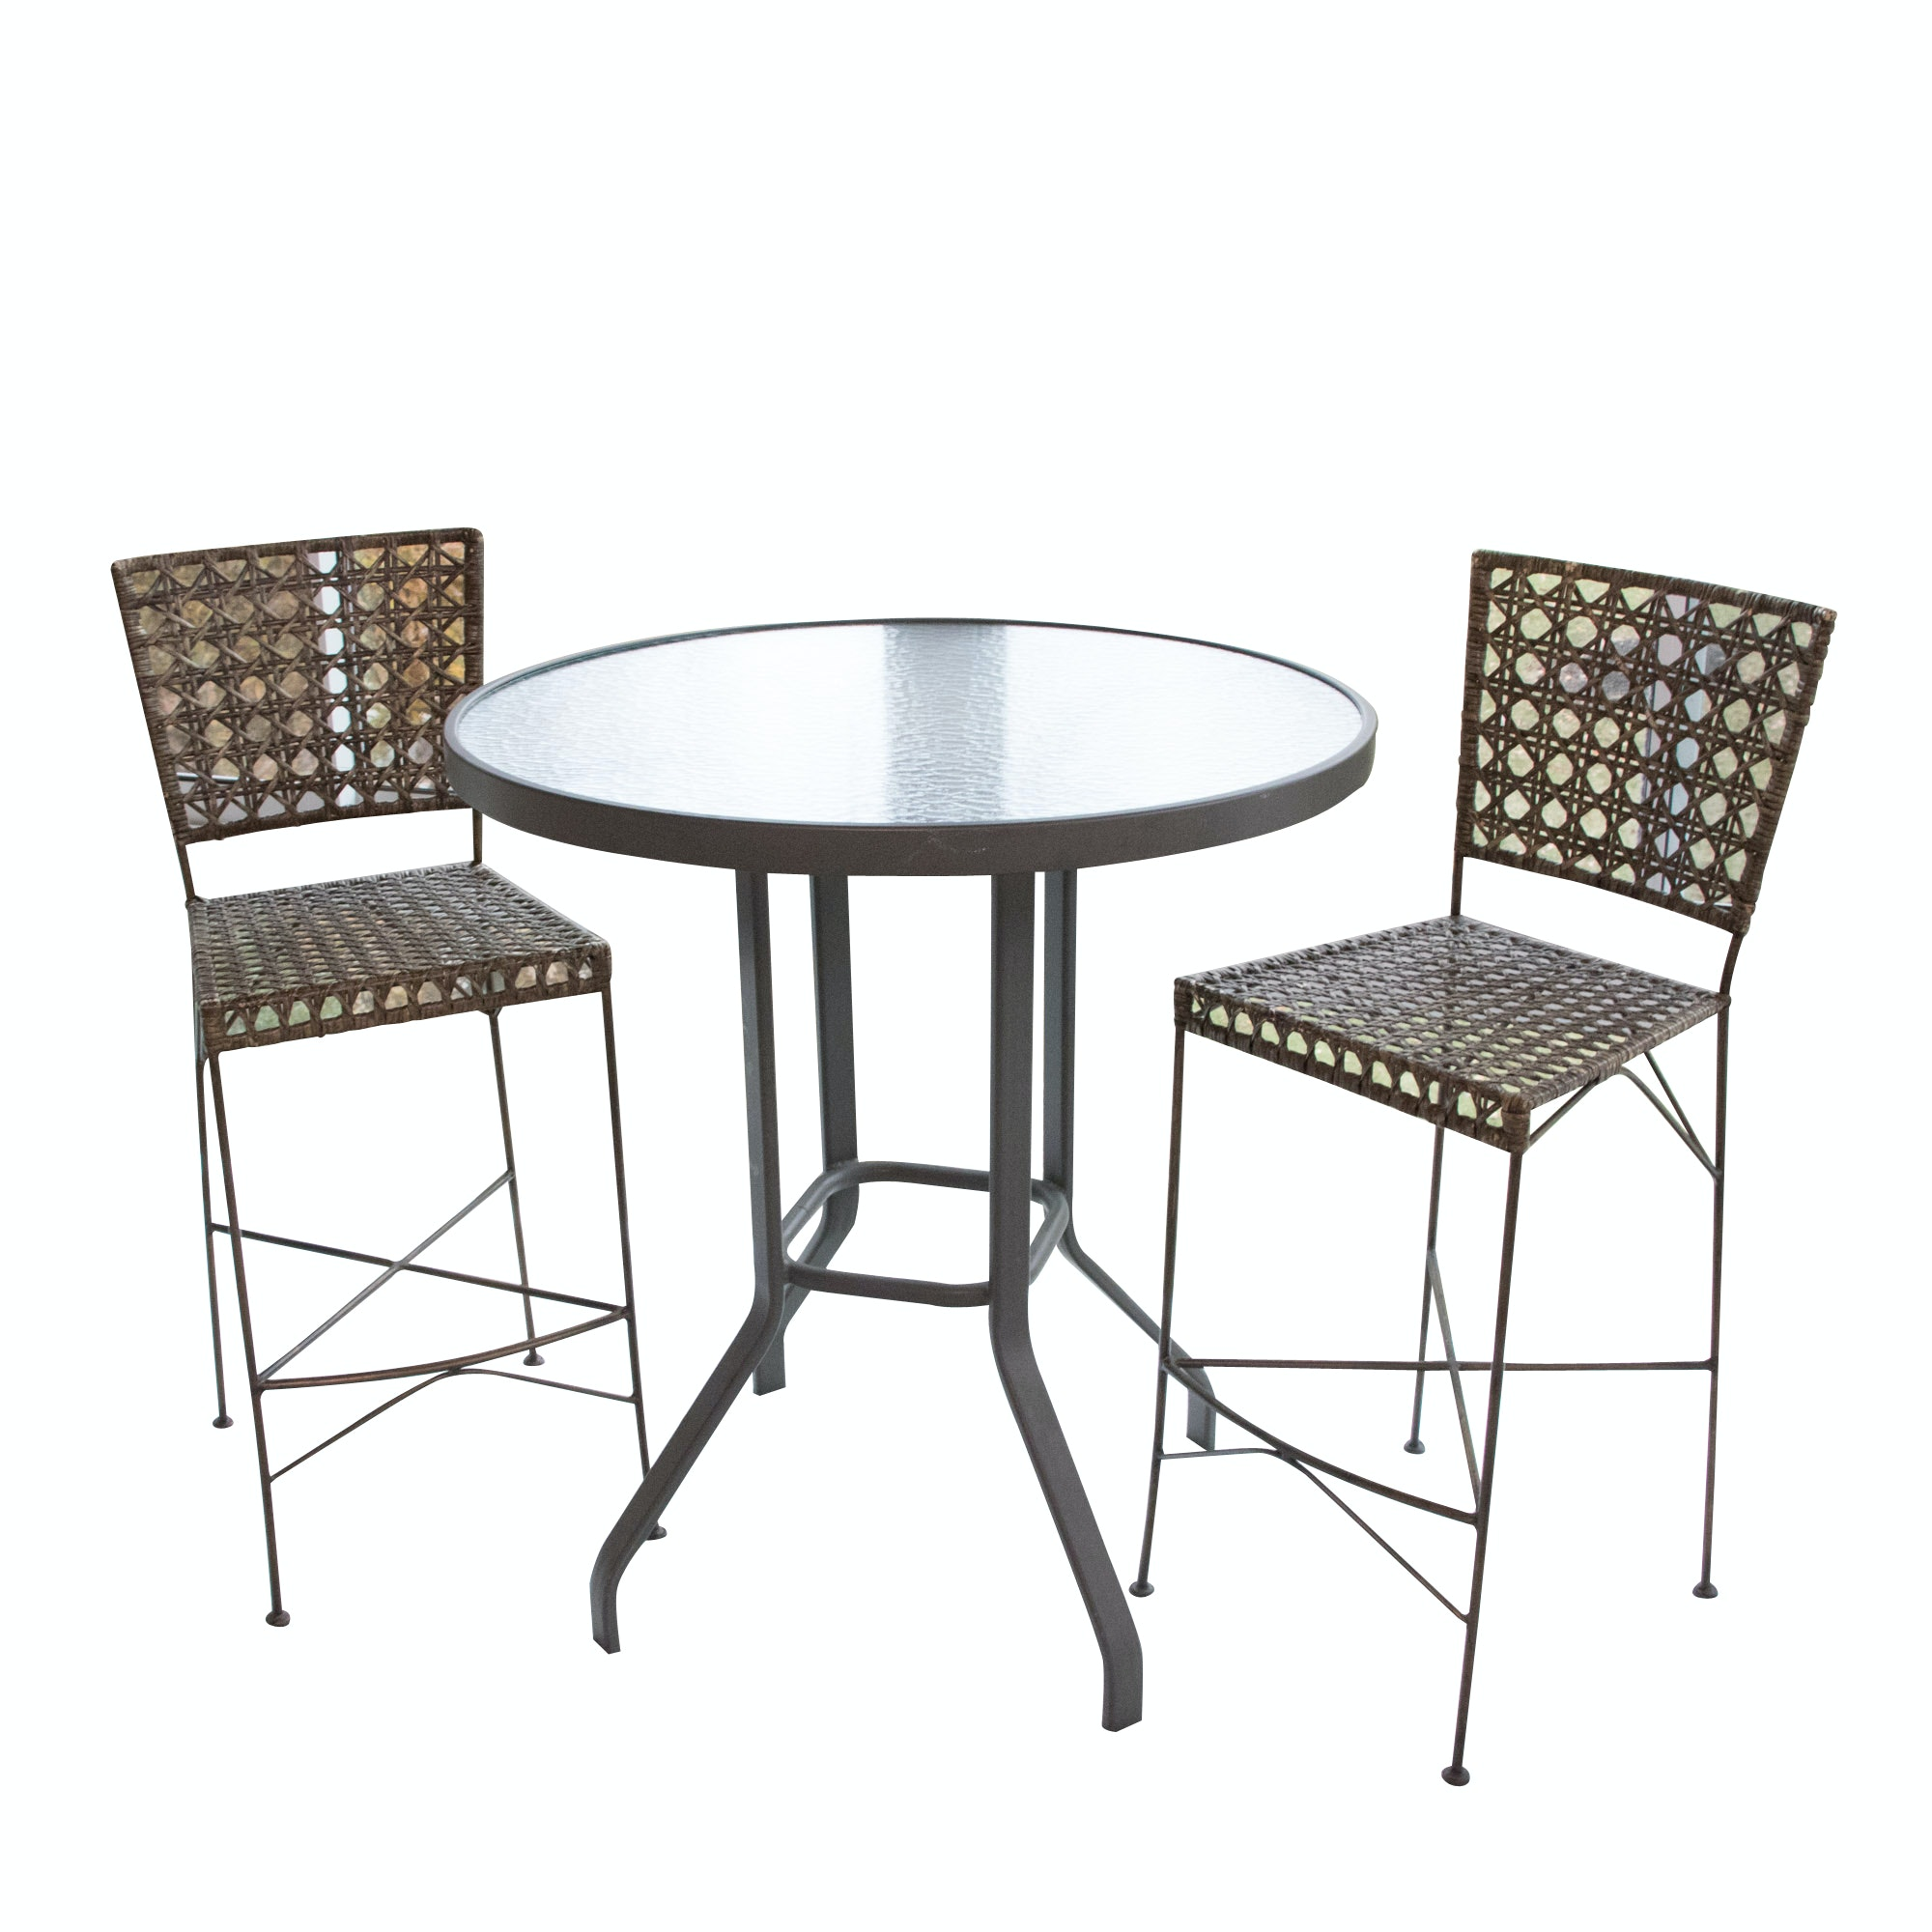 Contemporary Metal Bar Height Table and Chairs